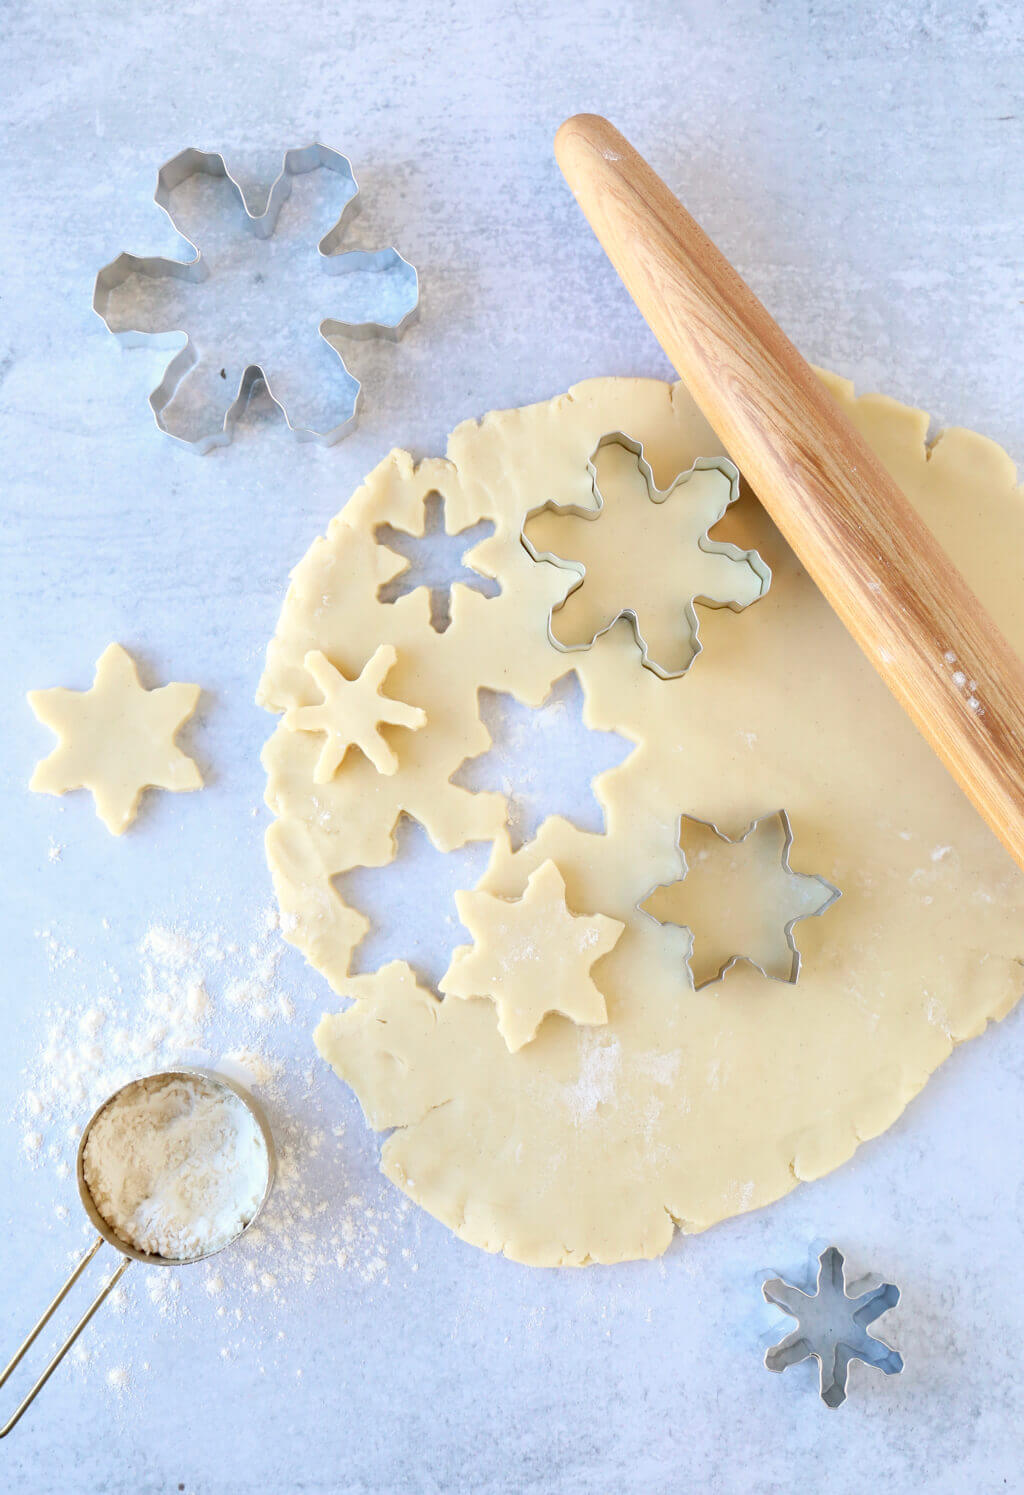 dough rolled out with a rolling pin and snowflake cookie cutters cutting the dough